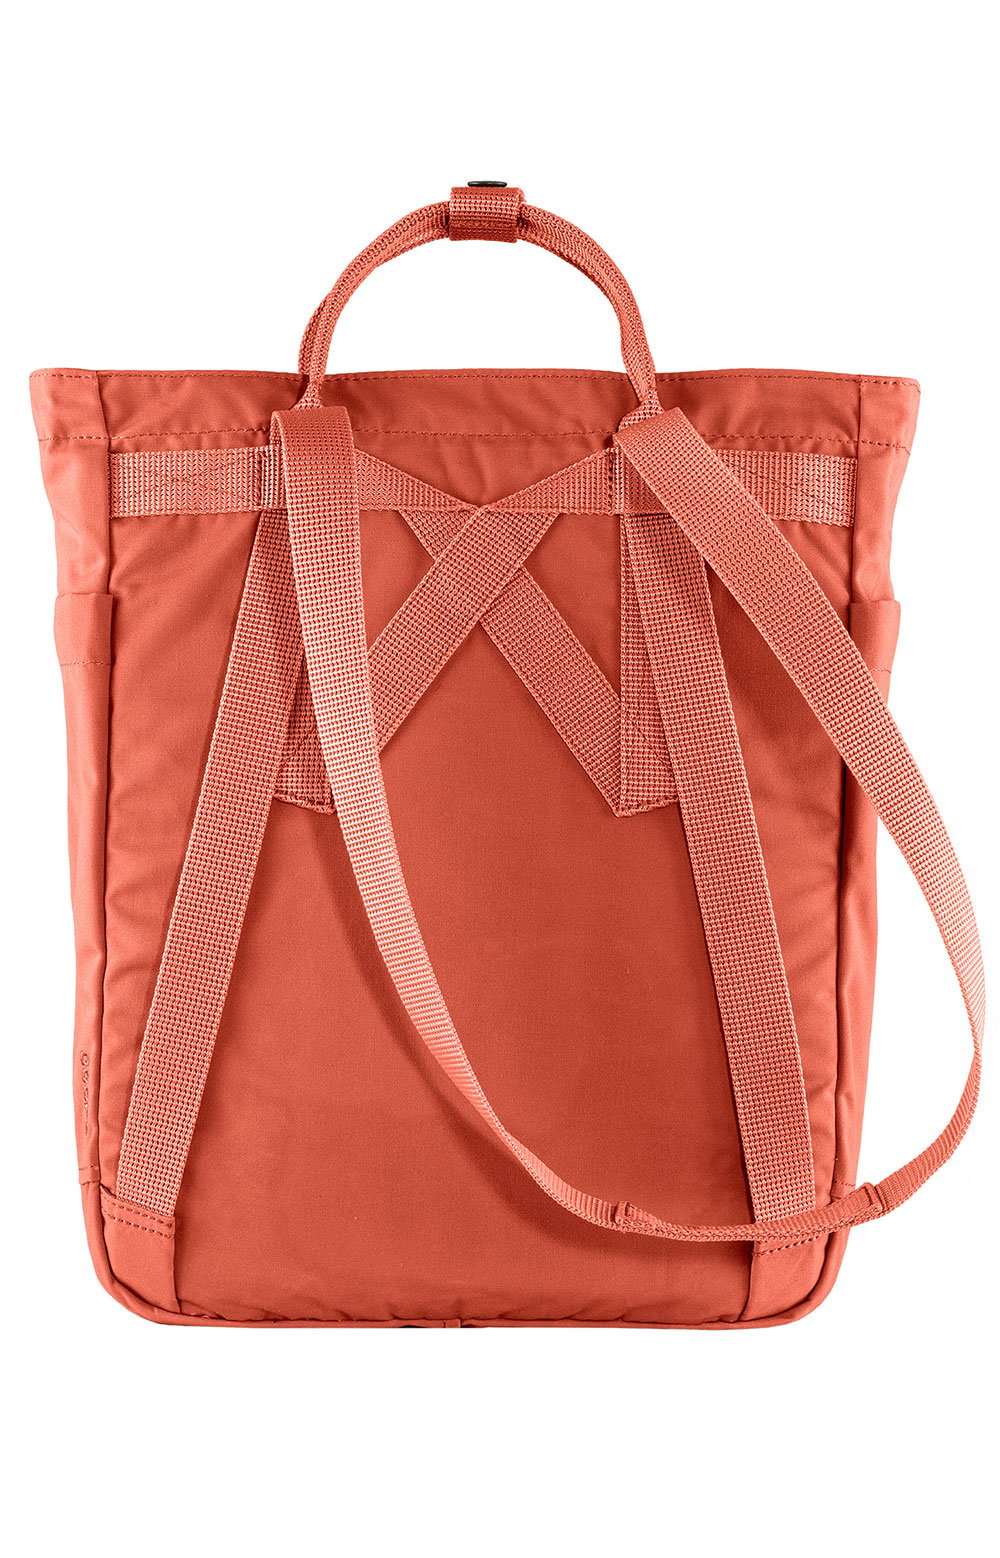 Kanken Tote Bag - Rowan Red 2